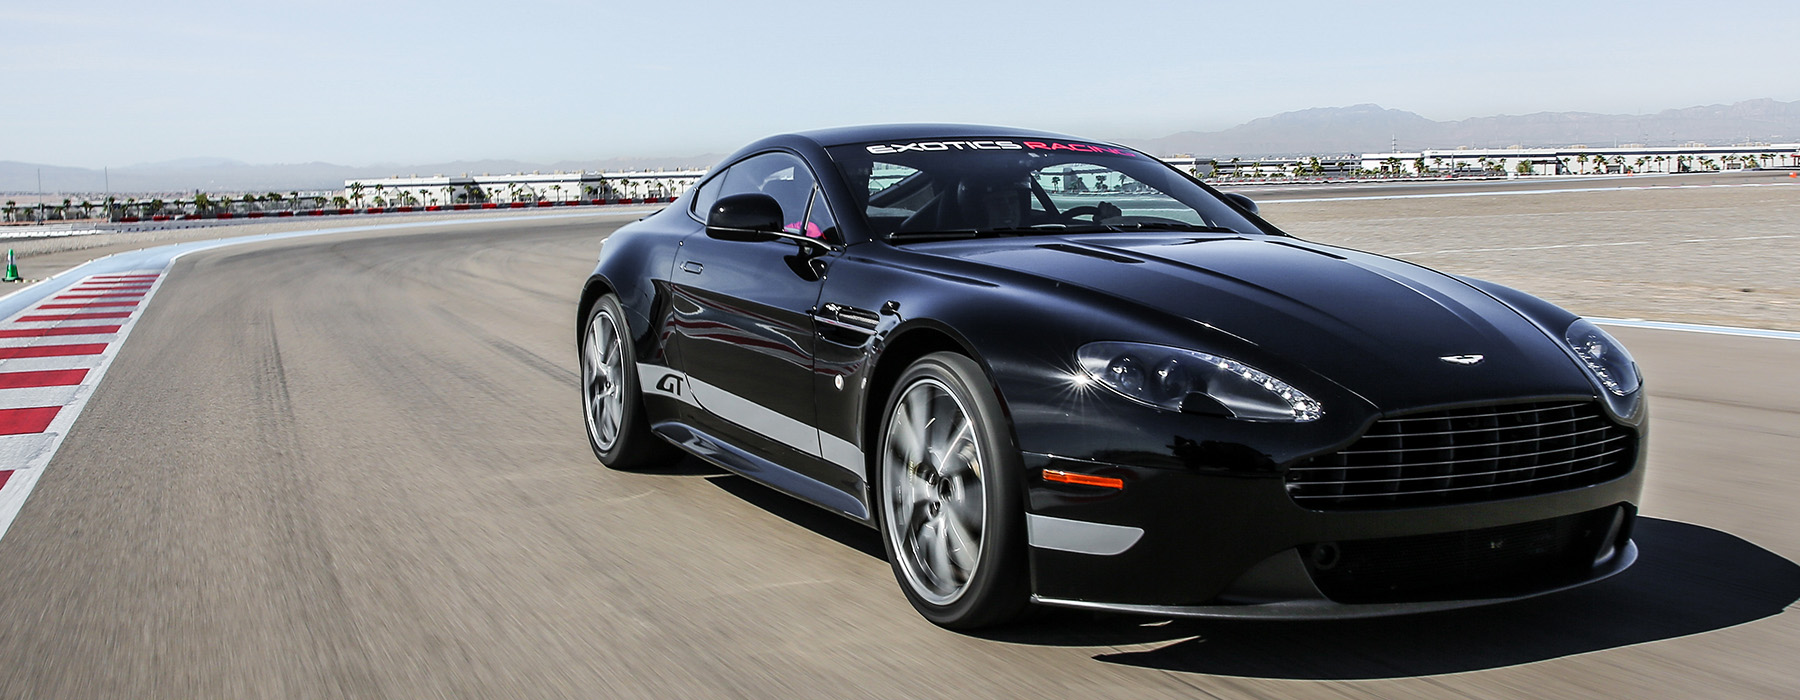 Drive An Aston Martin Vantage GT On A Racetrack At Exotics Racing - Aston martin dealership florida